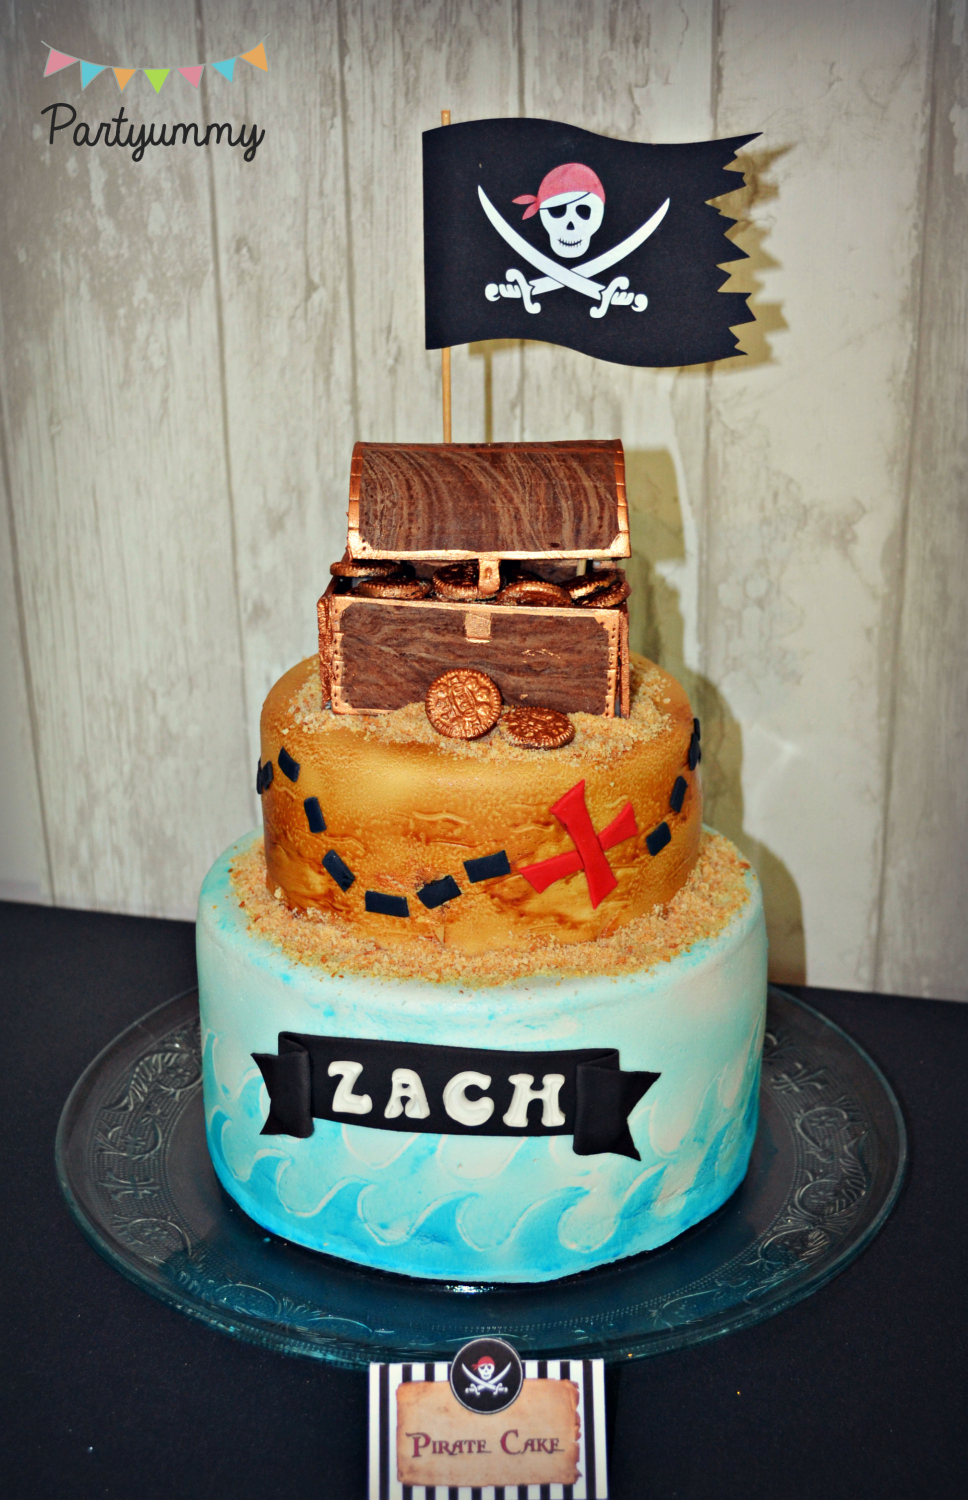 gateau-pirate-cake-drapeau-flag-coffre-chest-tresor-treasure-mer-sea